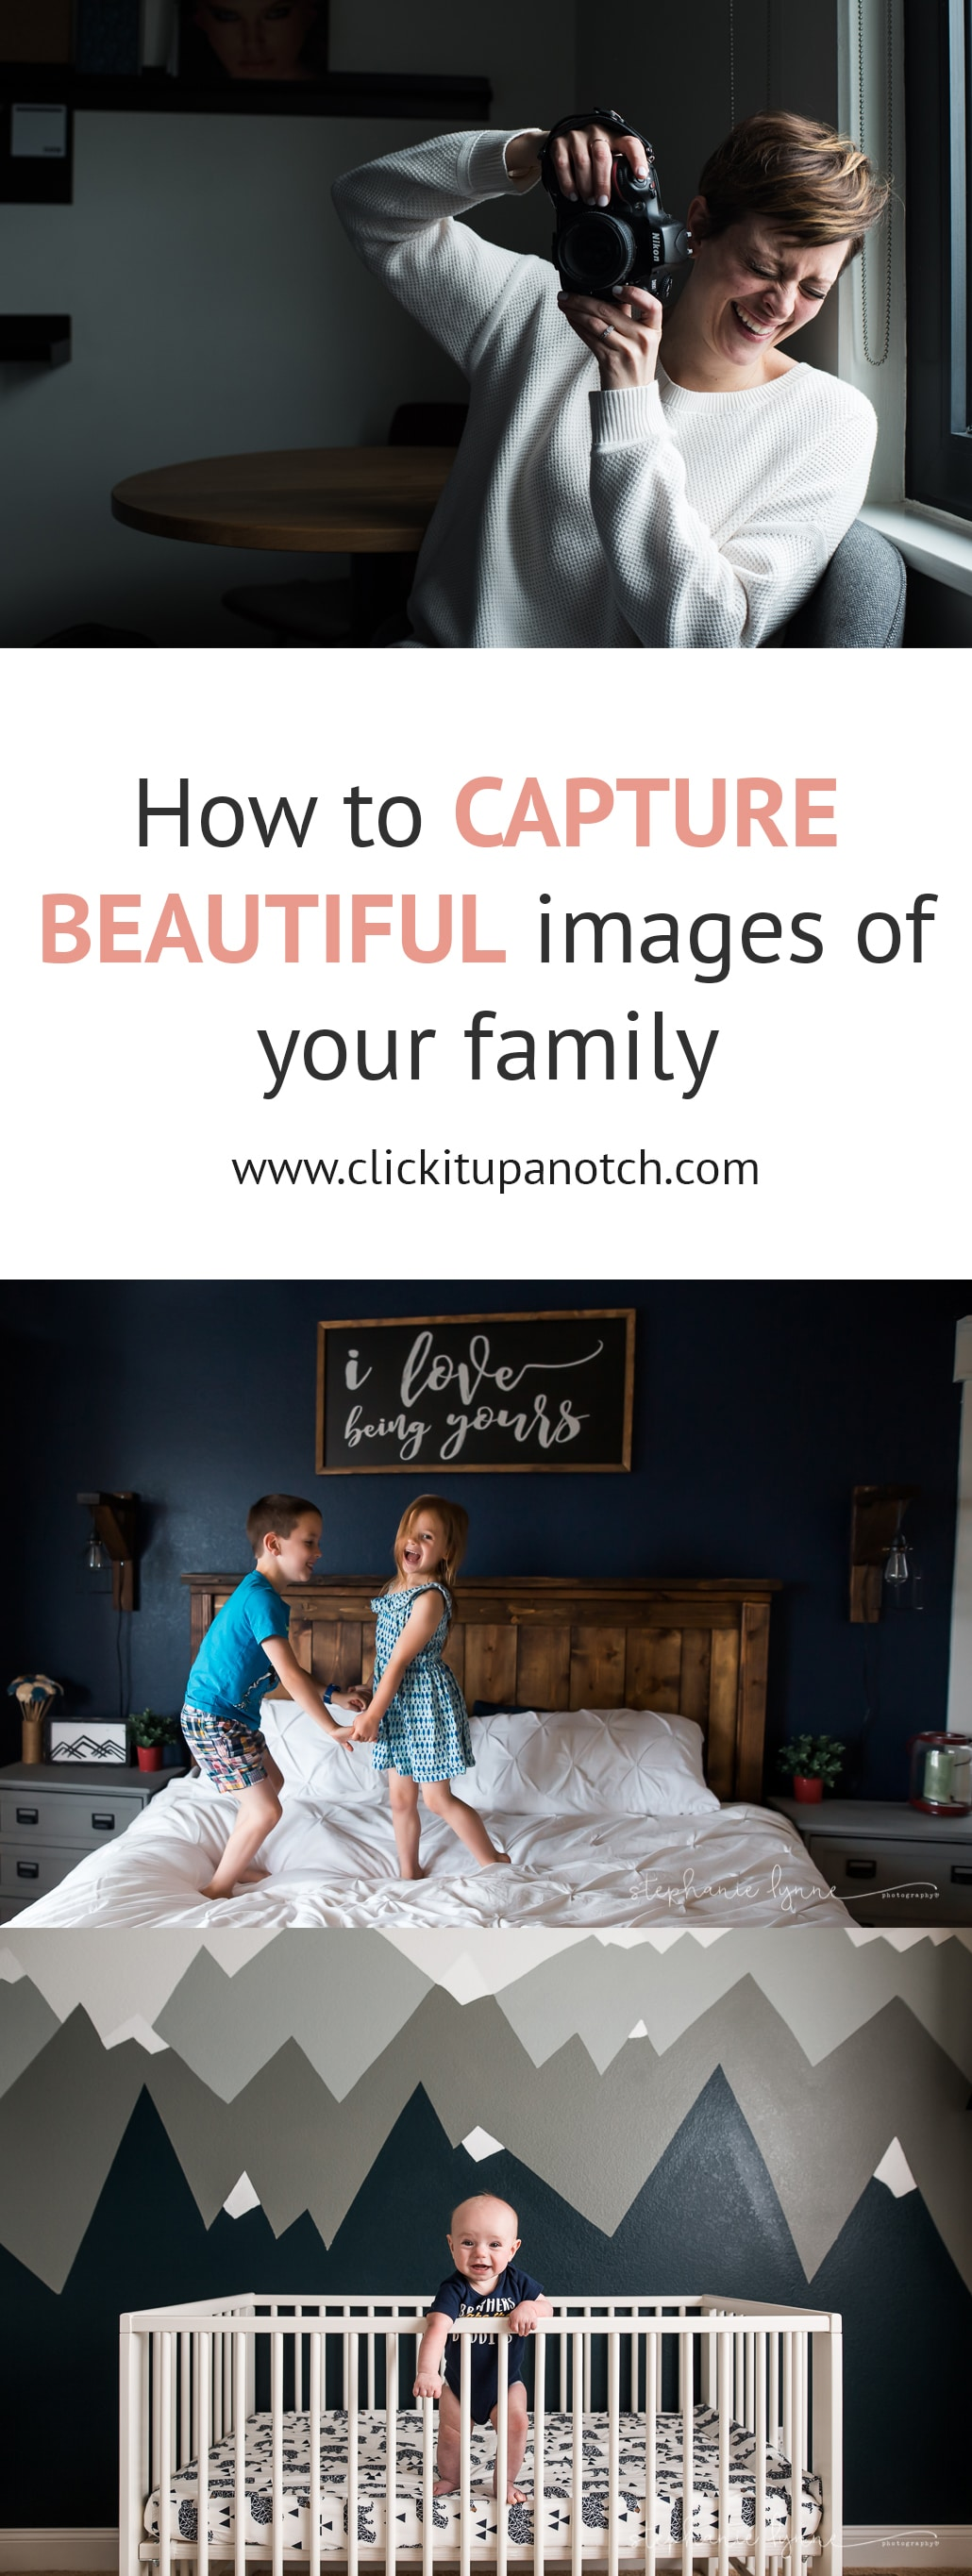 "These are awesome tips. Going to give these a go today. Read - ""Lifestyle Photography - How to Capture Beautiful Images of Your Family"""